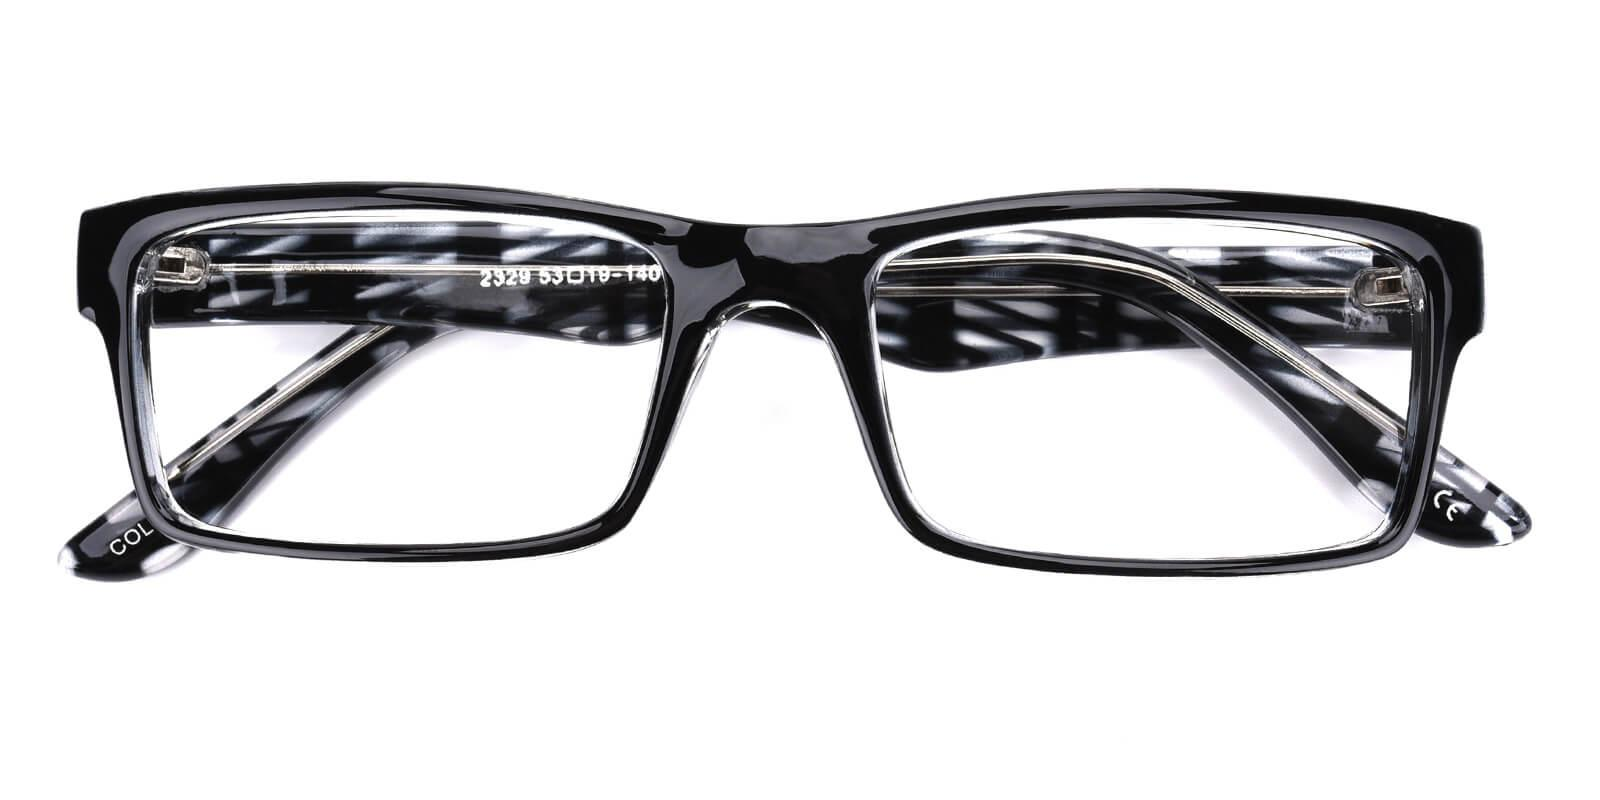 Moosern-Black-Rectangle-Acetate-Eyeglasses-detail